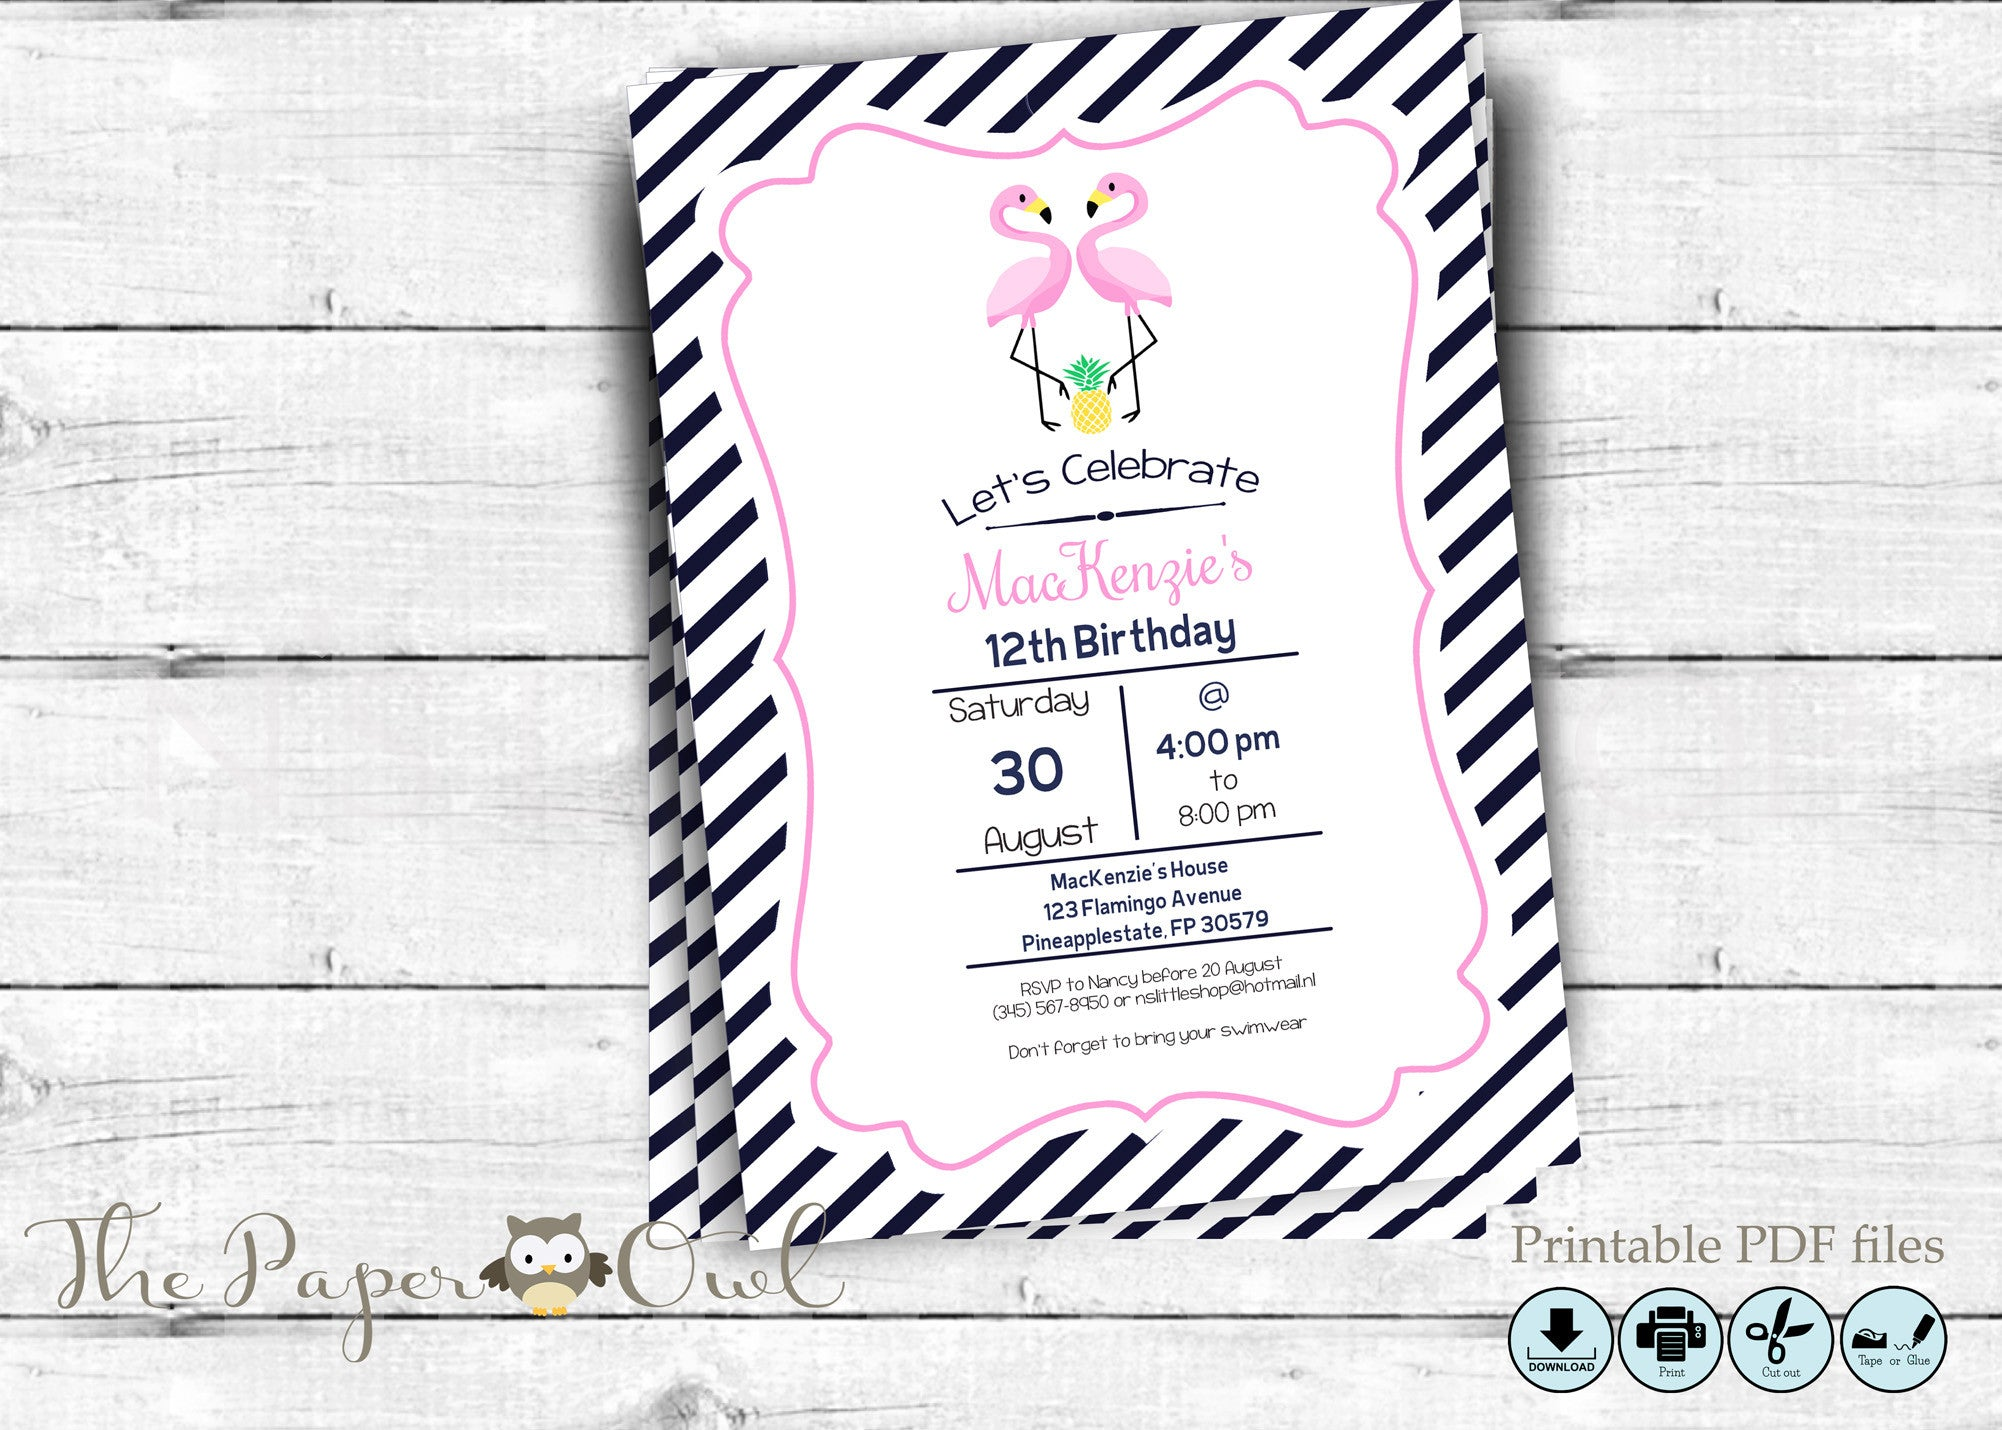 Flamingo party invitation, customize yourself - The Paper Owl